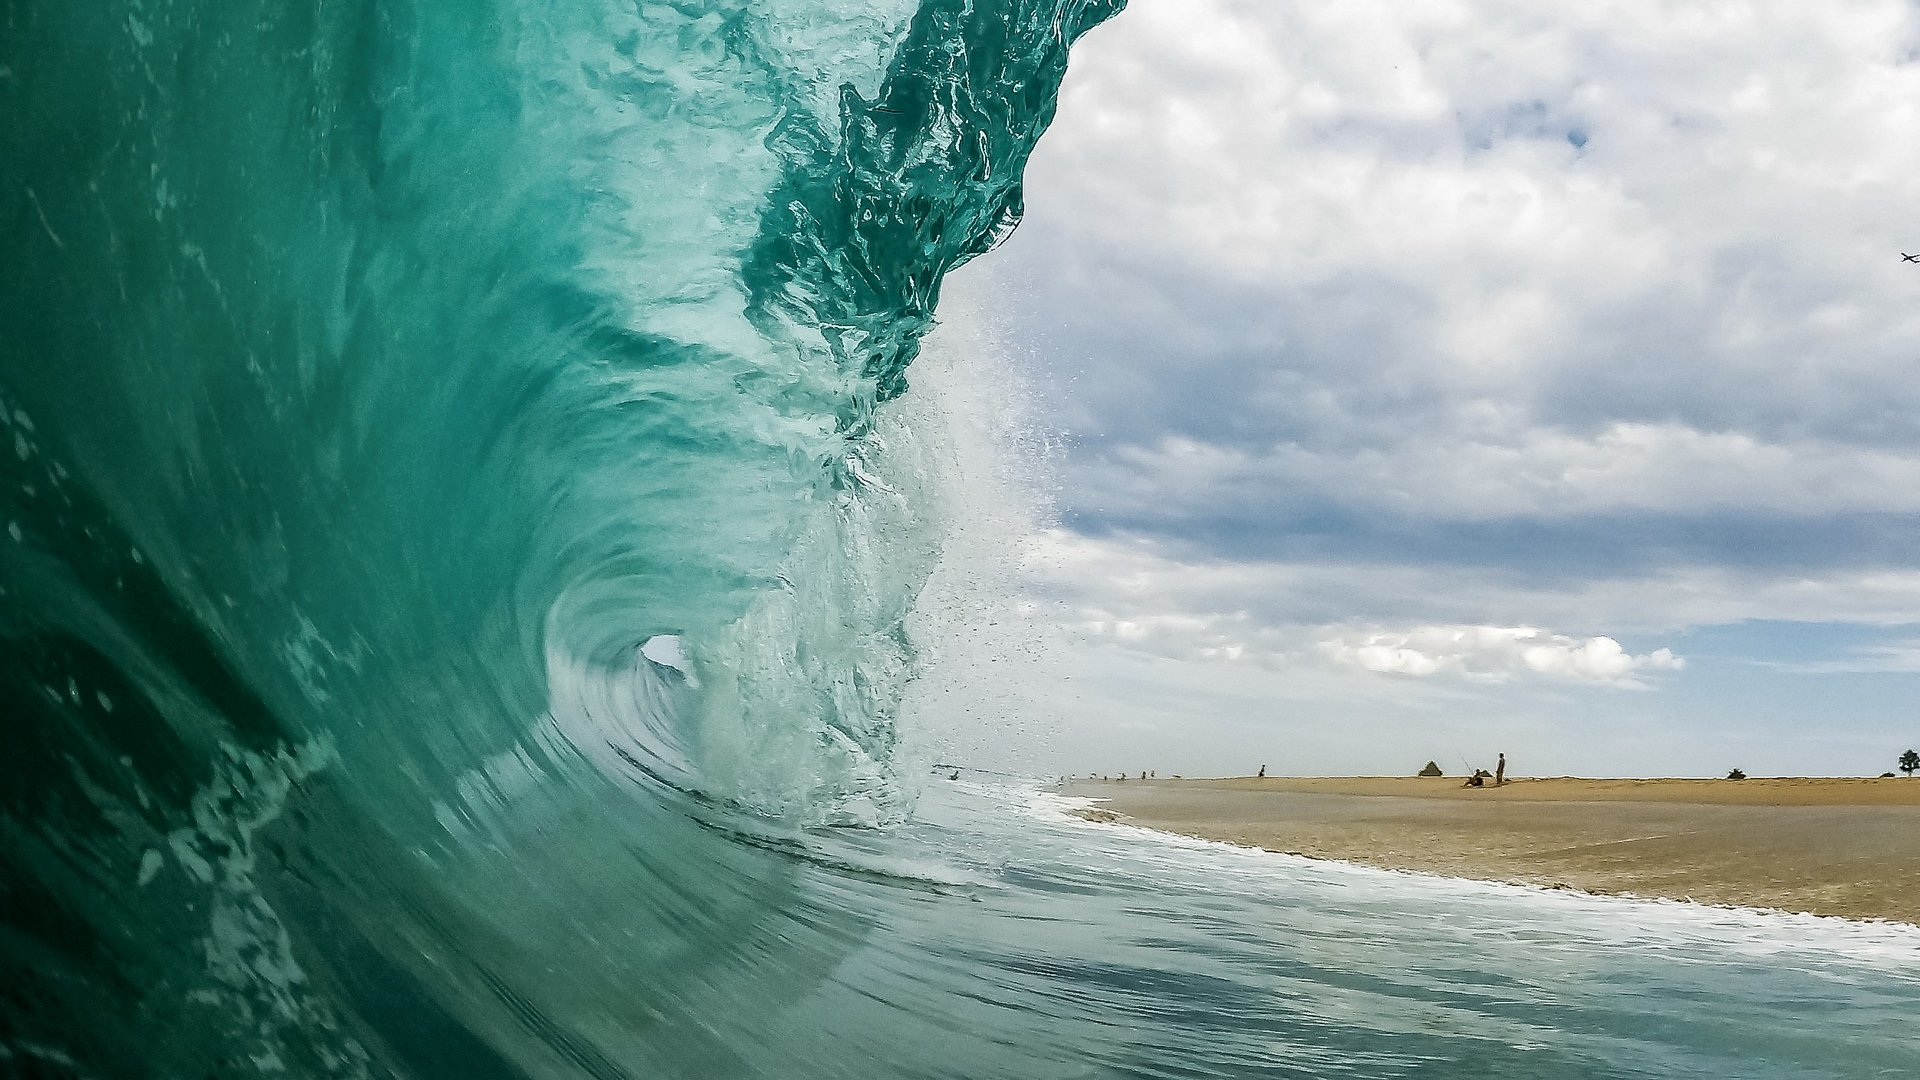 user994683's photo of The Wedge